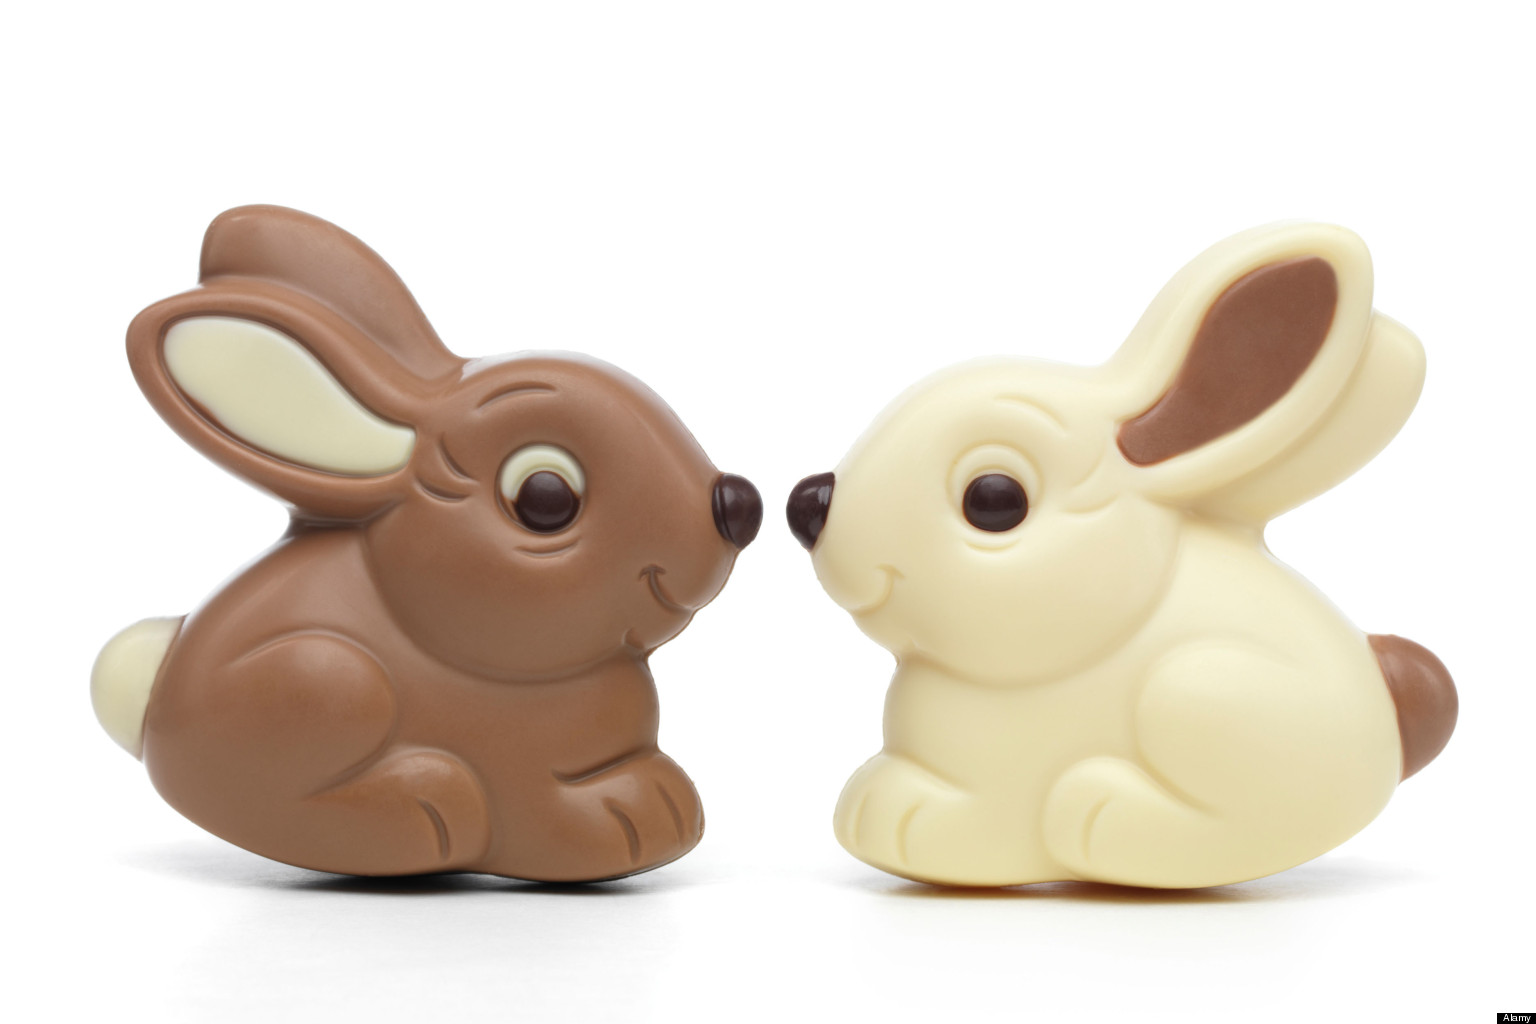 Easter Egg: Which Chocolates Have The Most Sugar?